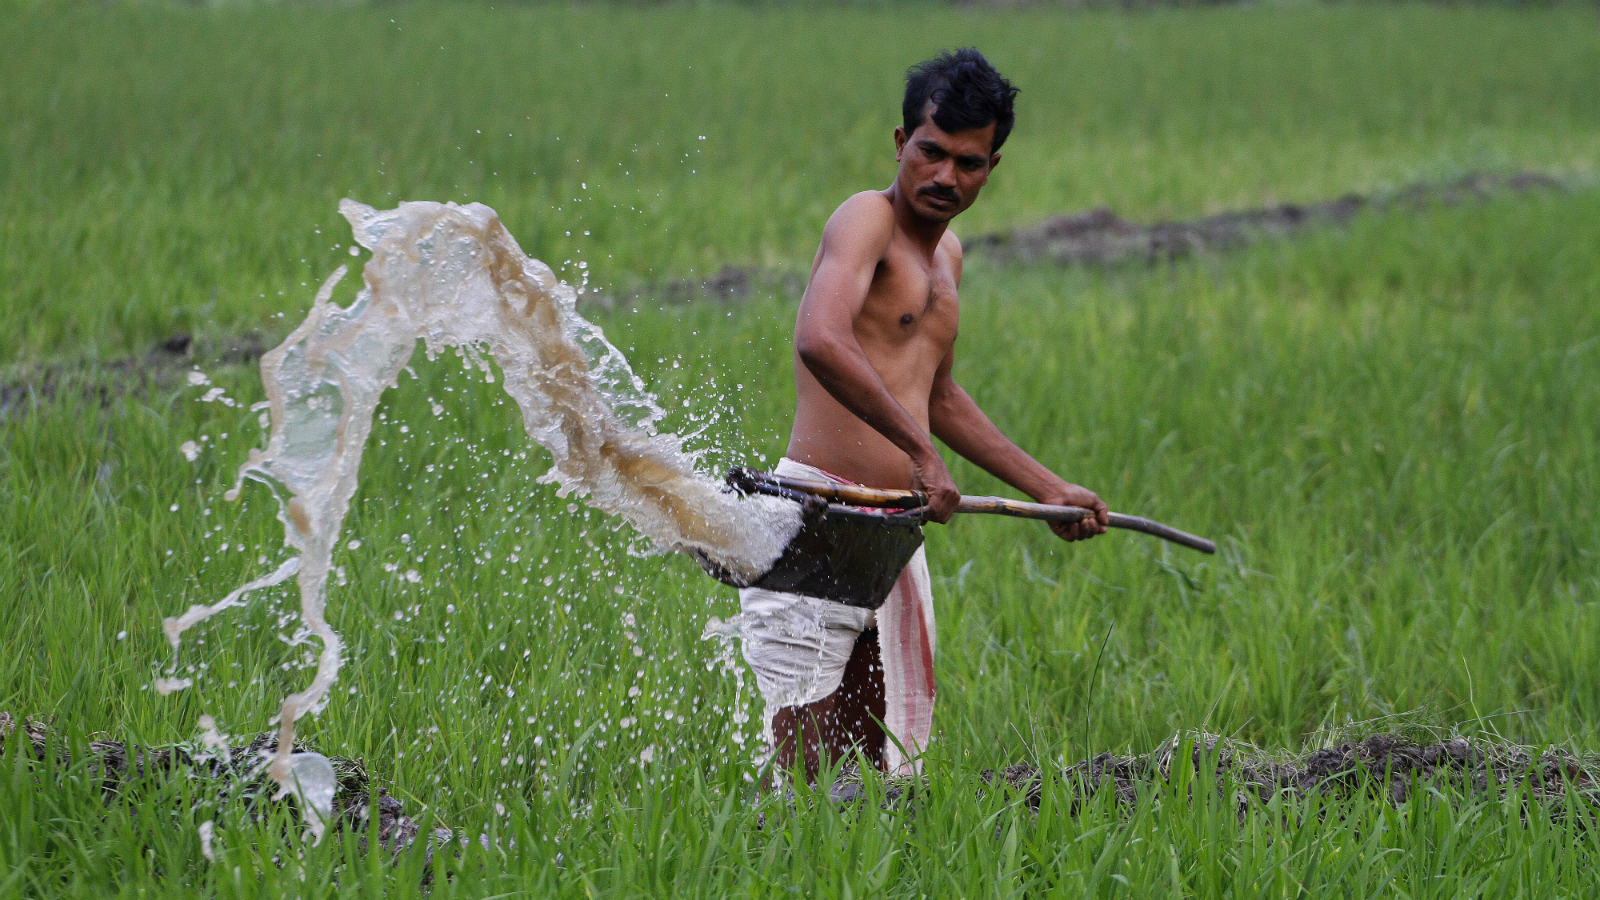 An Indian farmer waters his paddy field in Pobitora village, about 55 kilometers east of Gauhati, India, Wednesday, Feb. 29, 2012. India's economy grew at its slowest pace in over two years in the December quarter, adding to pressure on the central bank to lower interest rates even as inflation remains high. Agriculture grew 2.7 percent in the October-December quarter from a year earlier. (AP Photo/Anupam Nath)